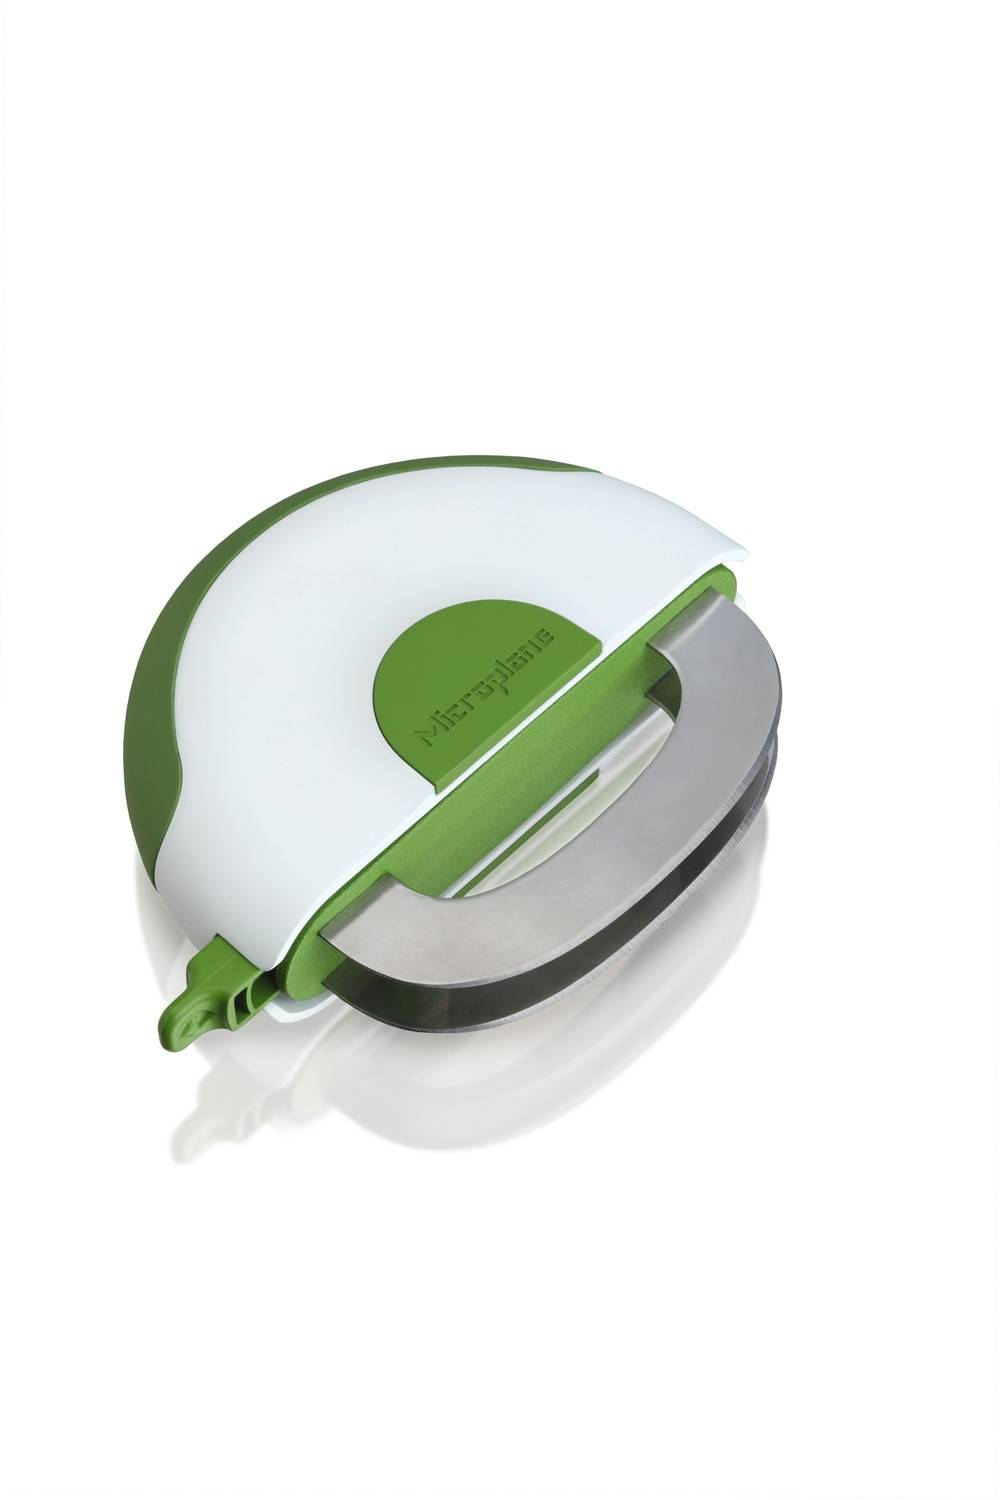 I've become a huge fan of chopped salads lately (who wants to mess with a knife on your first course) so Microplane's retractable, dual-blade Herb & Salad Chopper is on my wish list. With it's rocking action, it excels in chopping greens, radishes, onions, herbs and even tomatoes and nuts. $13.95. Available in June.